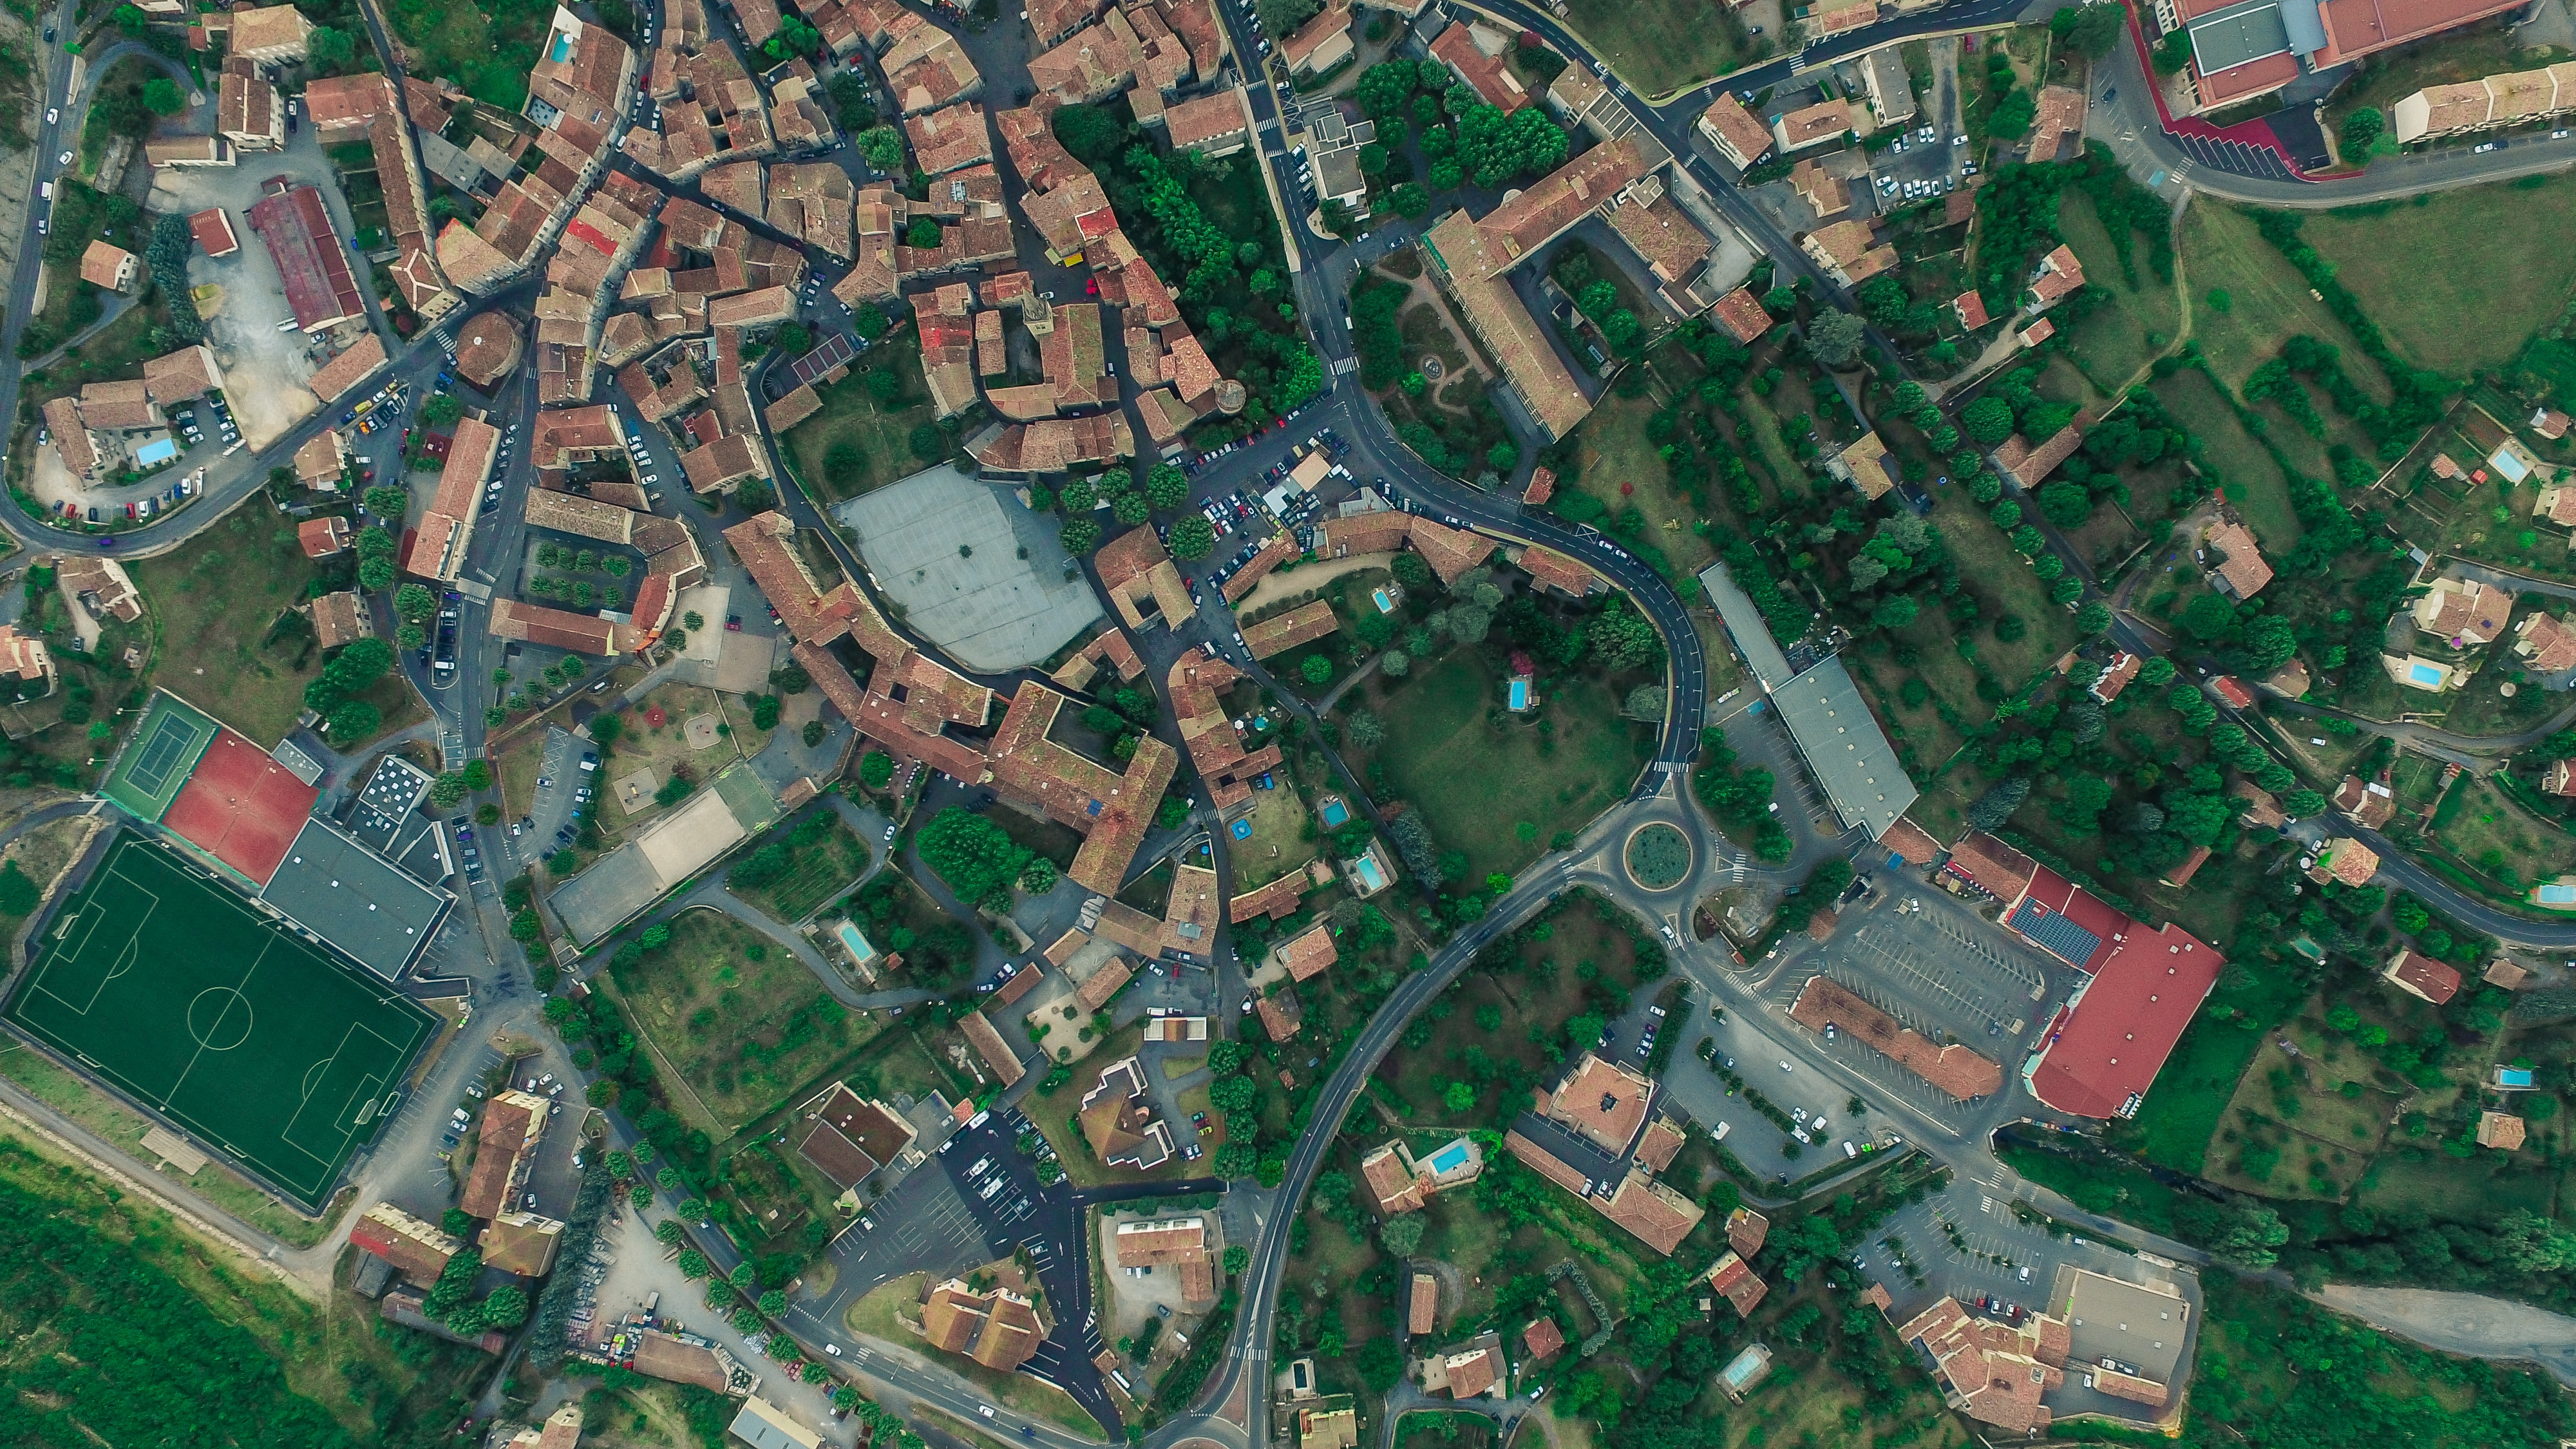 aerial photography of city with houses